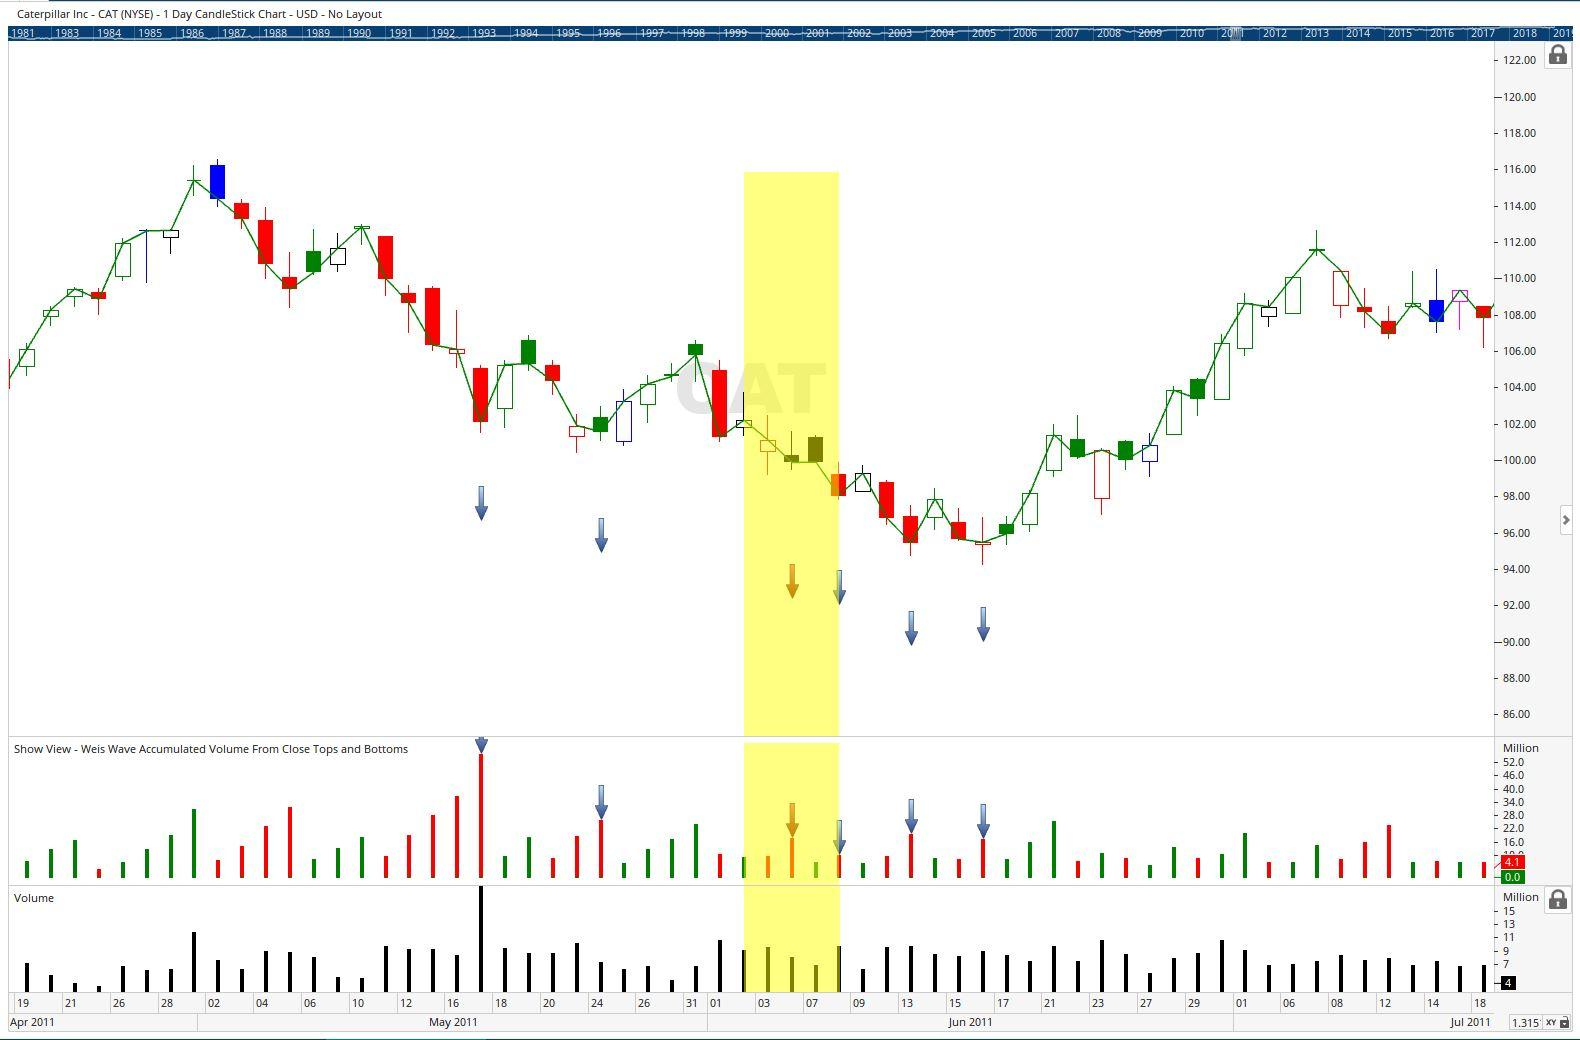 20190224 CAT Weis Wave Accumulated Volume From Close Tops and Bottoms